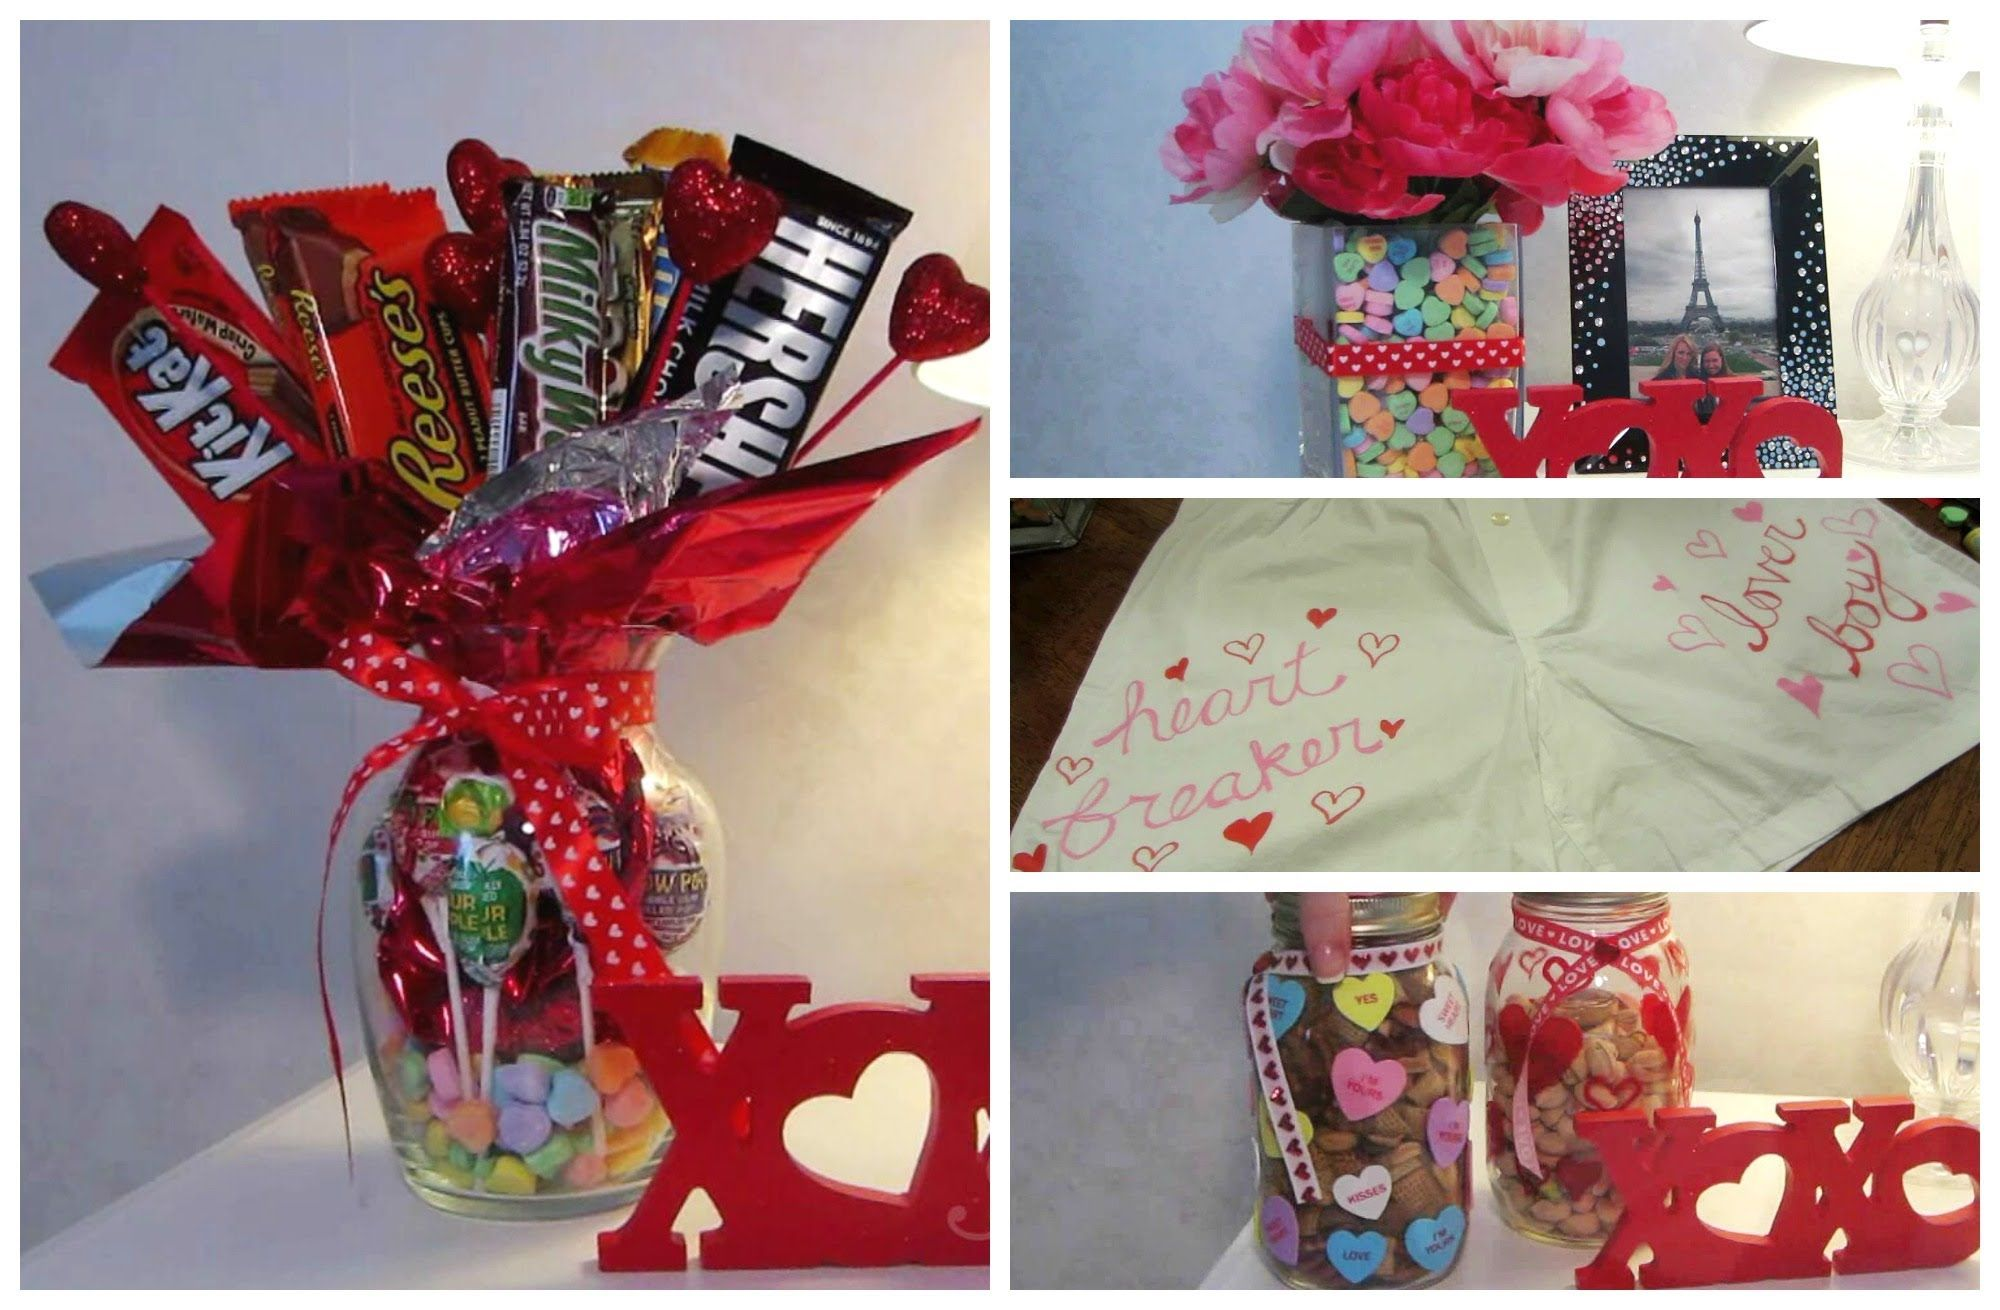 Cute Valentine Diy Gift Ideas Decorated Mason Jars Filled With